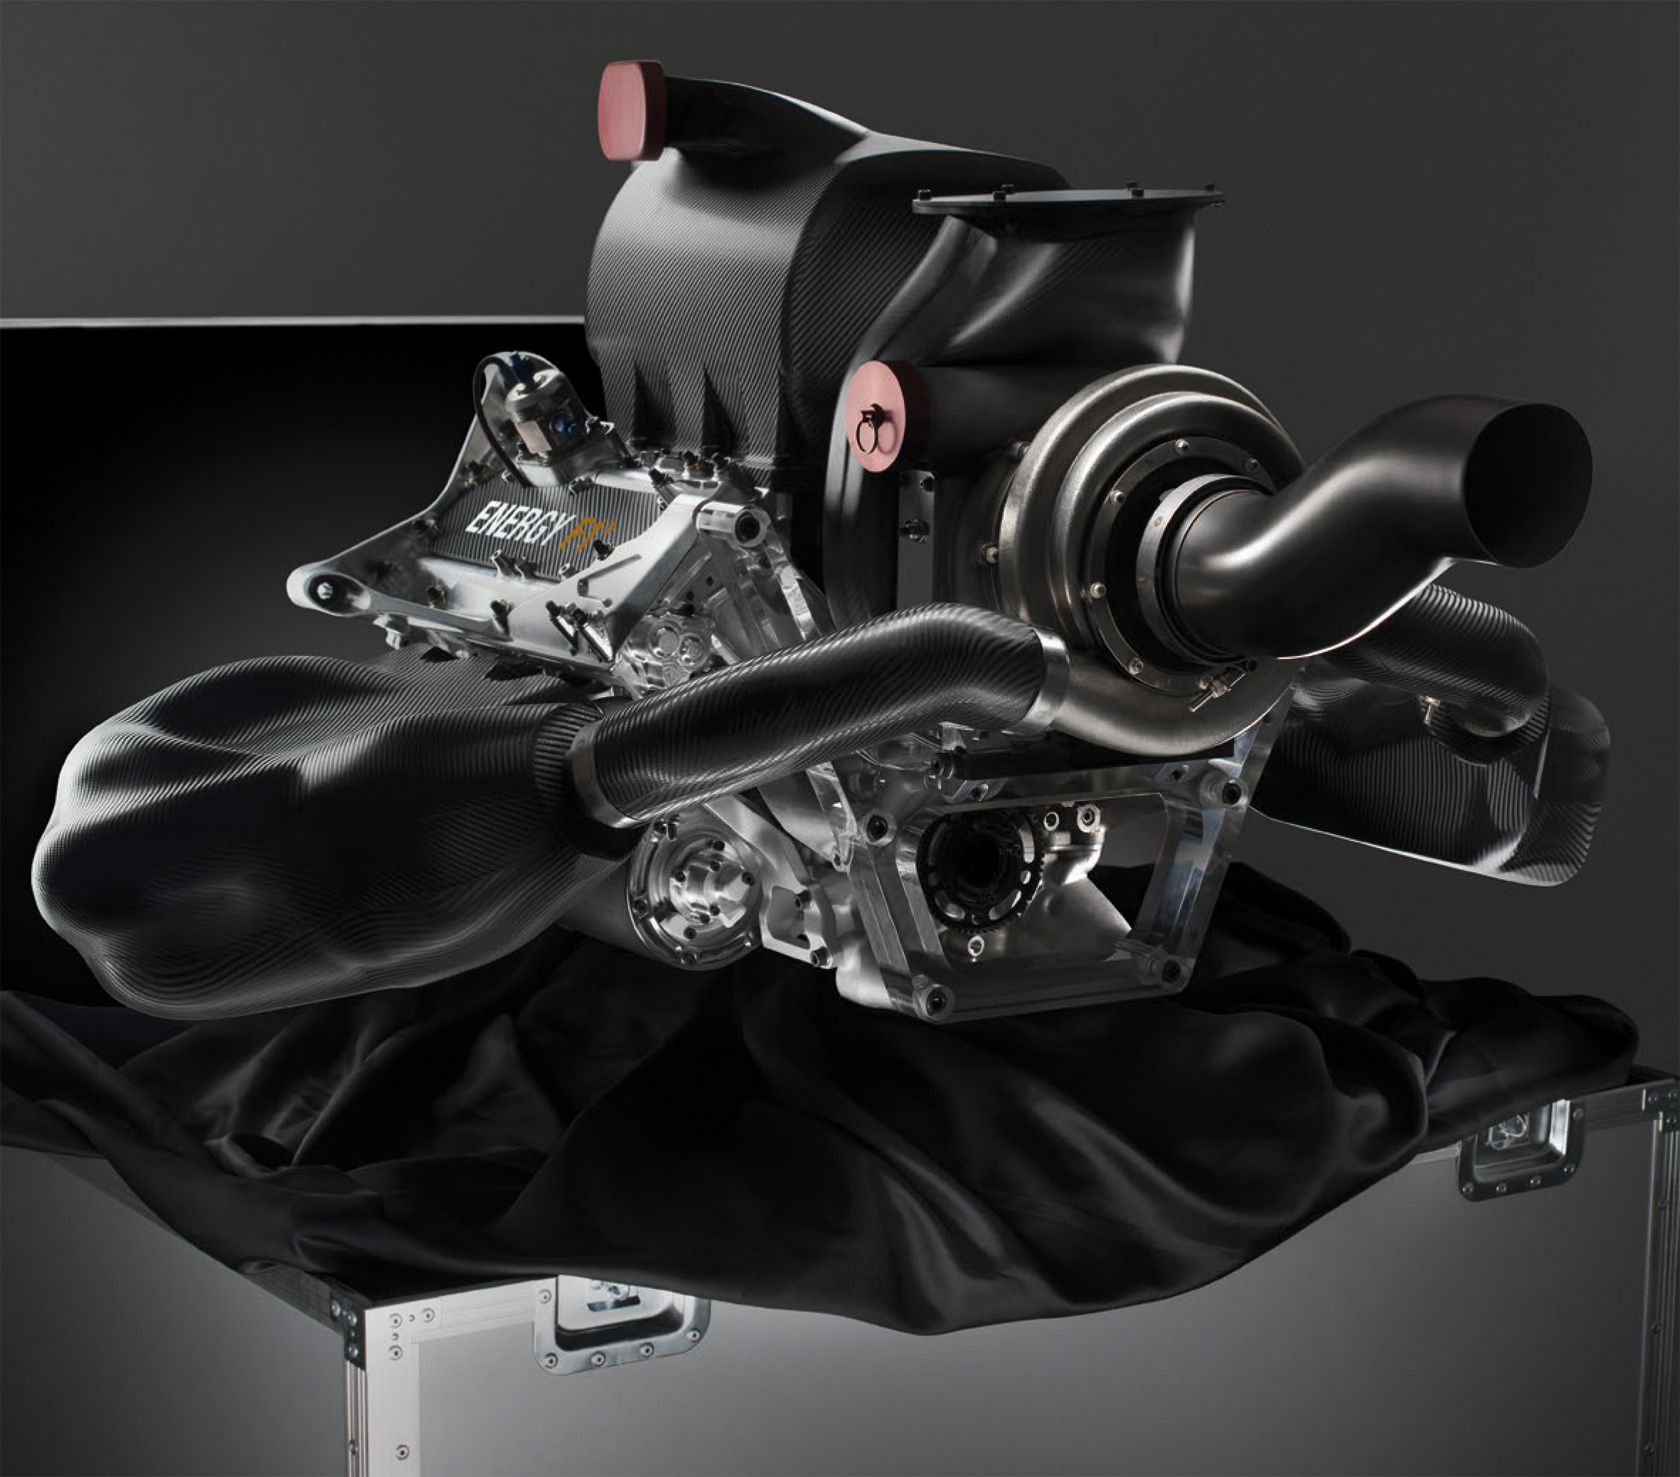 1.6l 145kg turbocharged Renault F1 engine. 15 kRPM